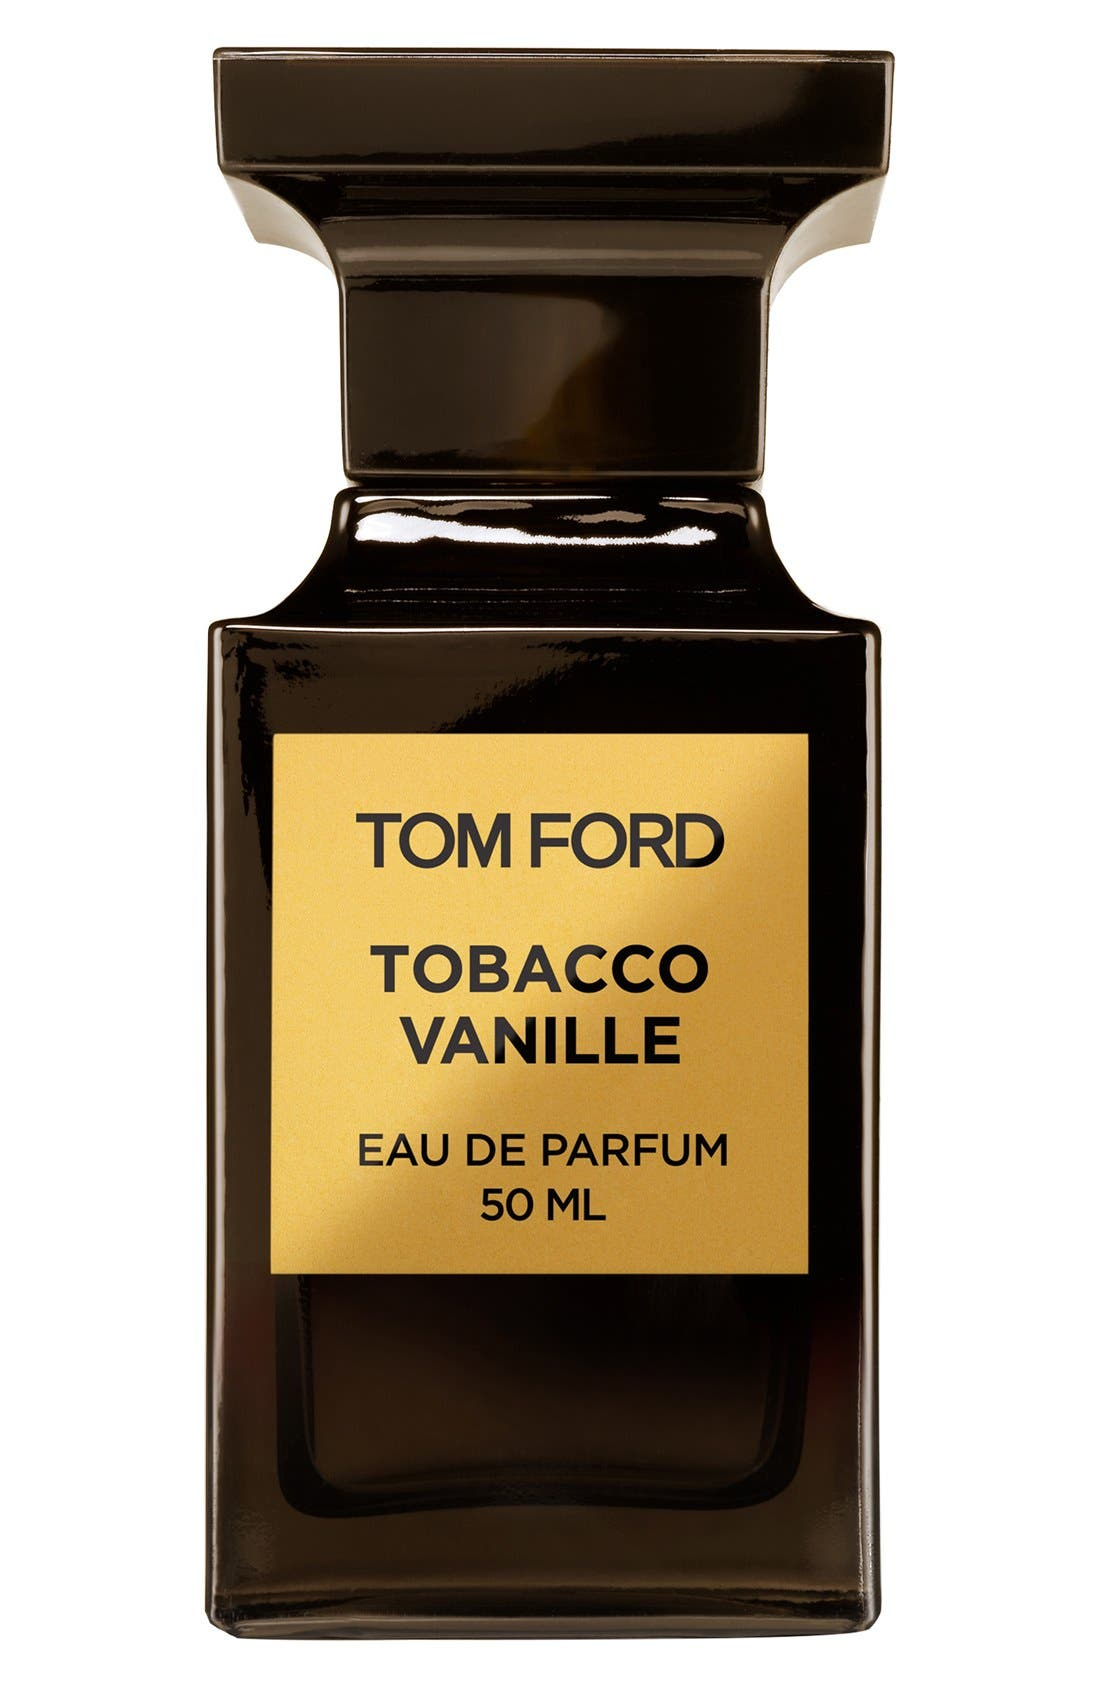 Tom Ford Private Blend Tobacco Vanille Eau de Parfum